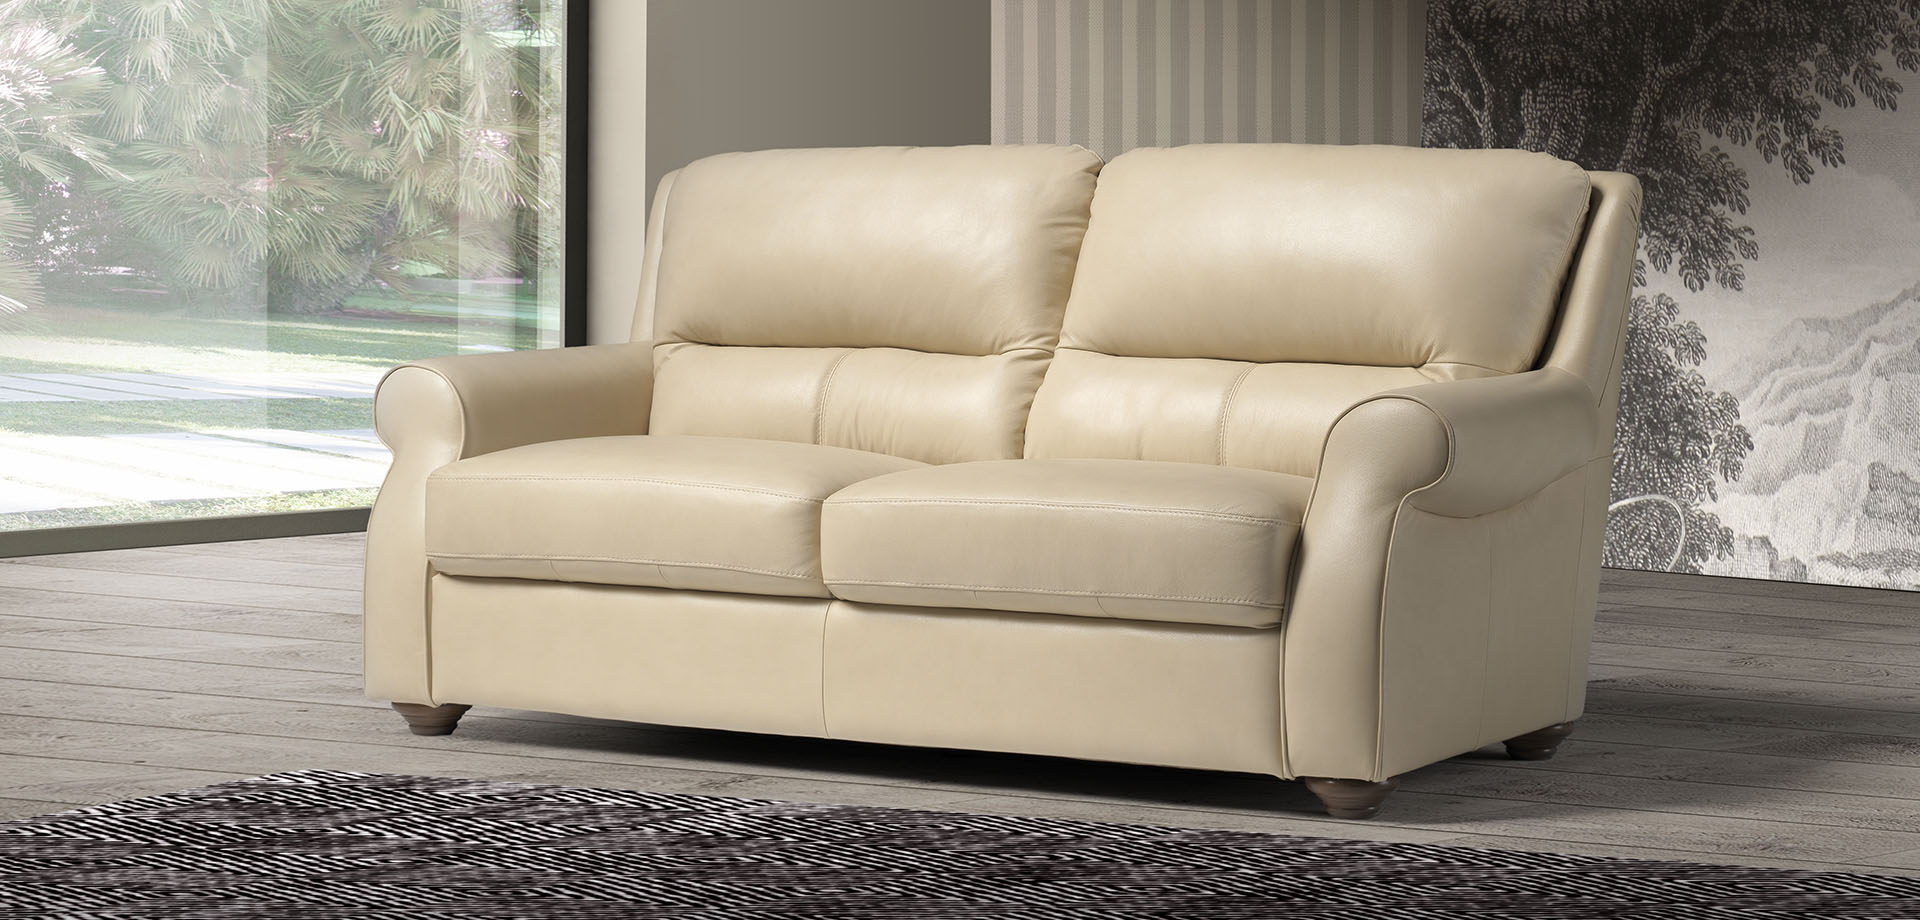 Grace small 3 seater Sofa (C)